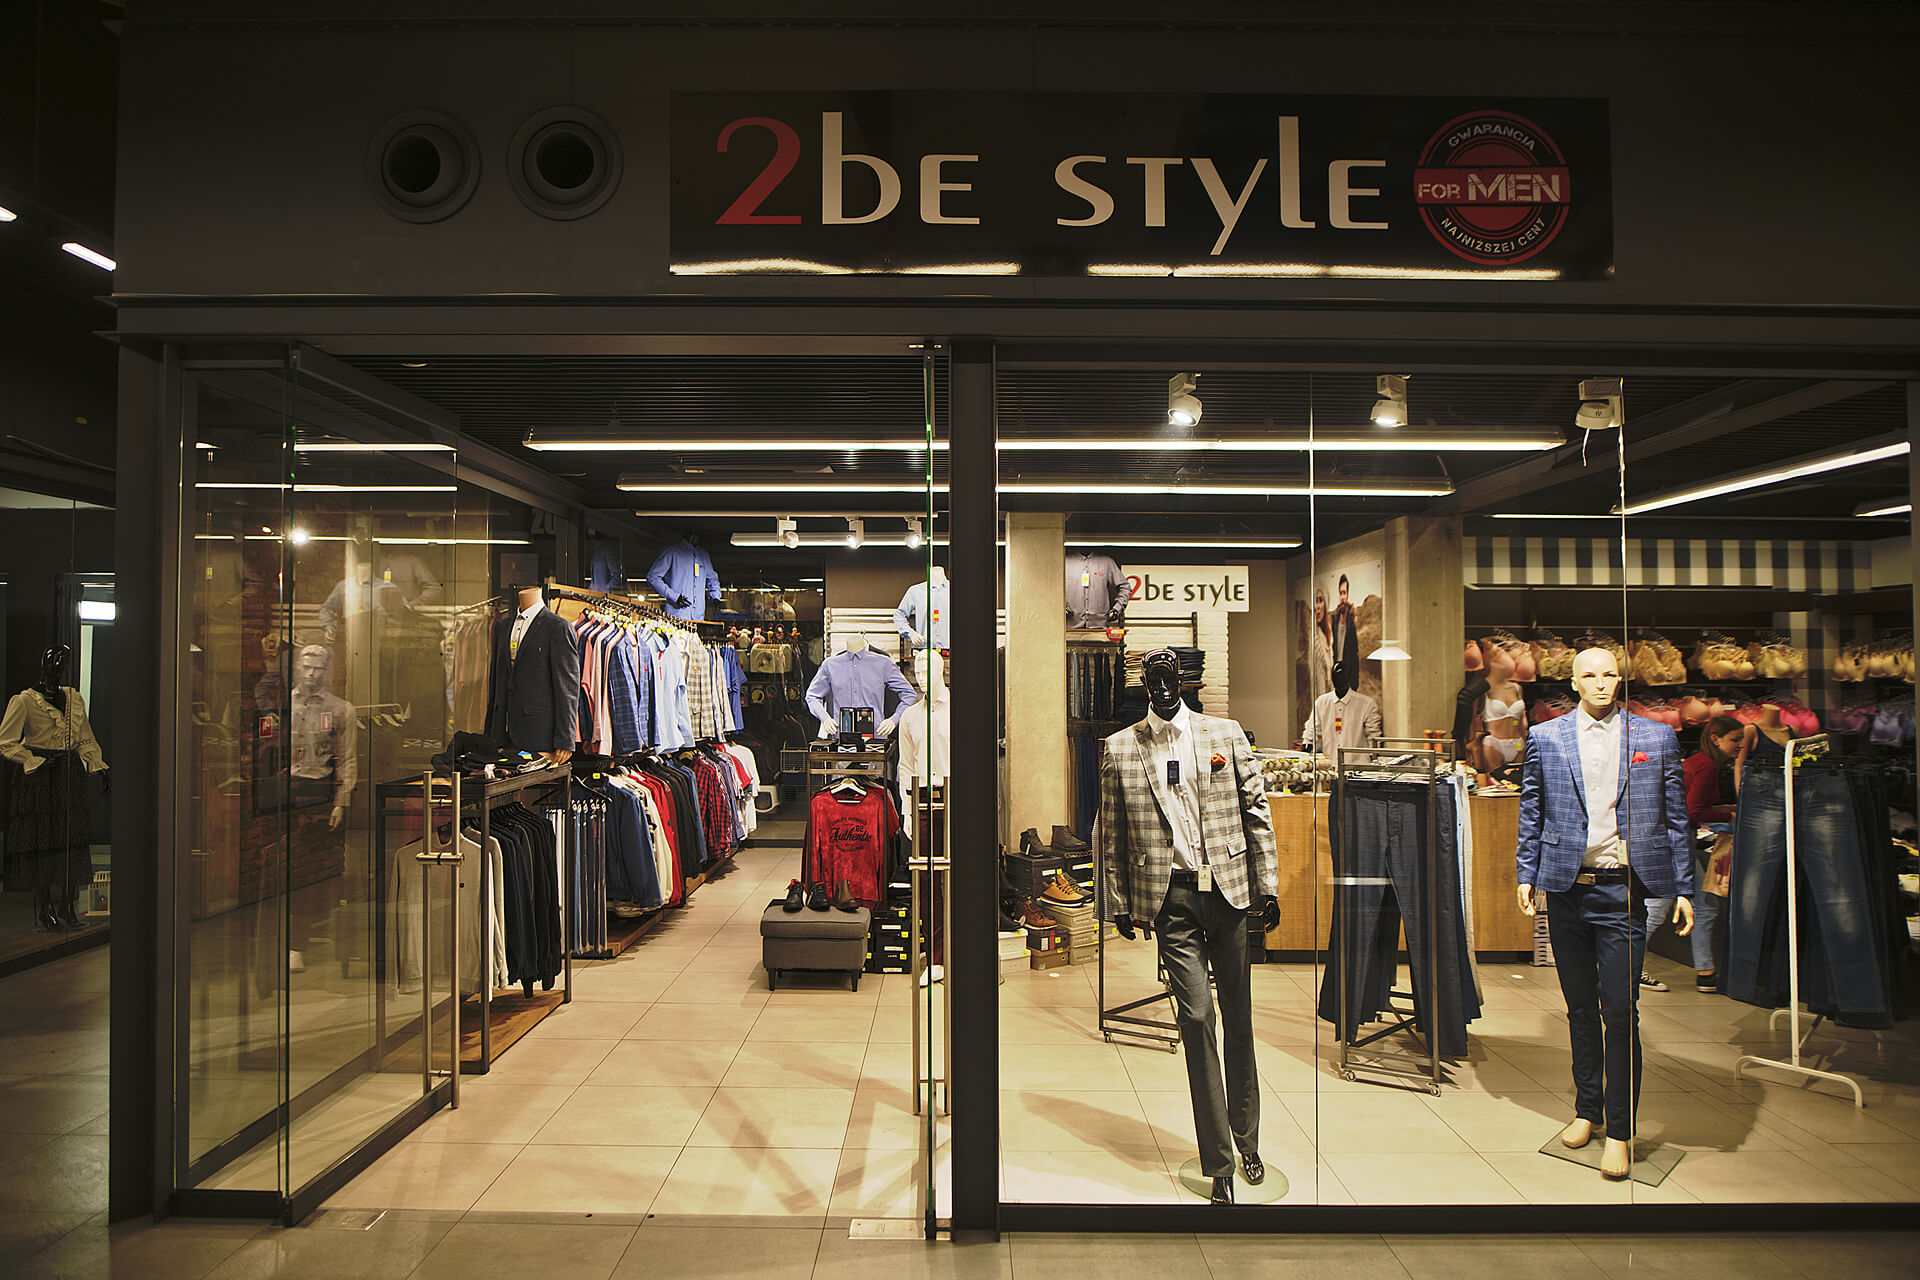 2be style for men